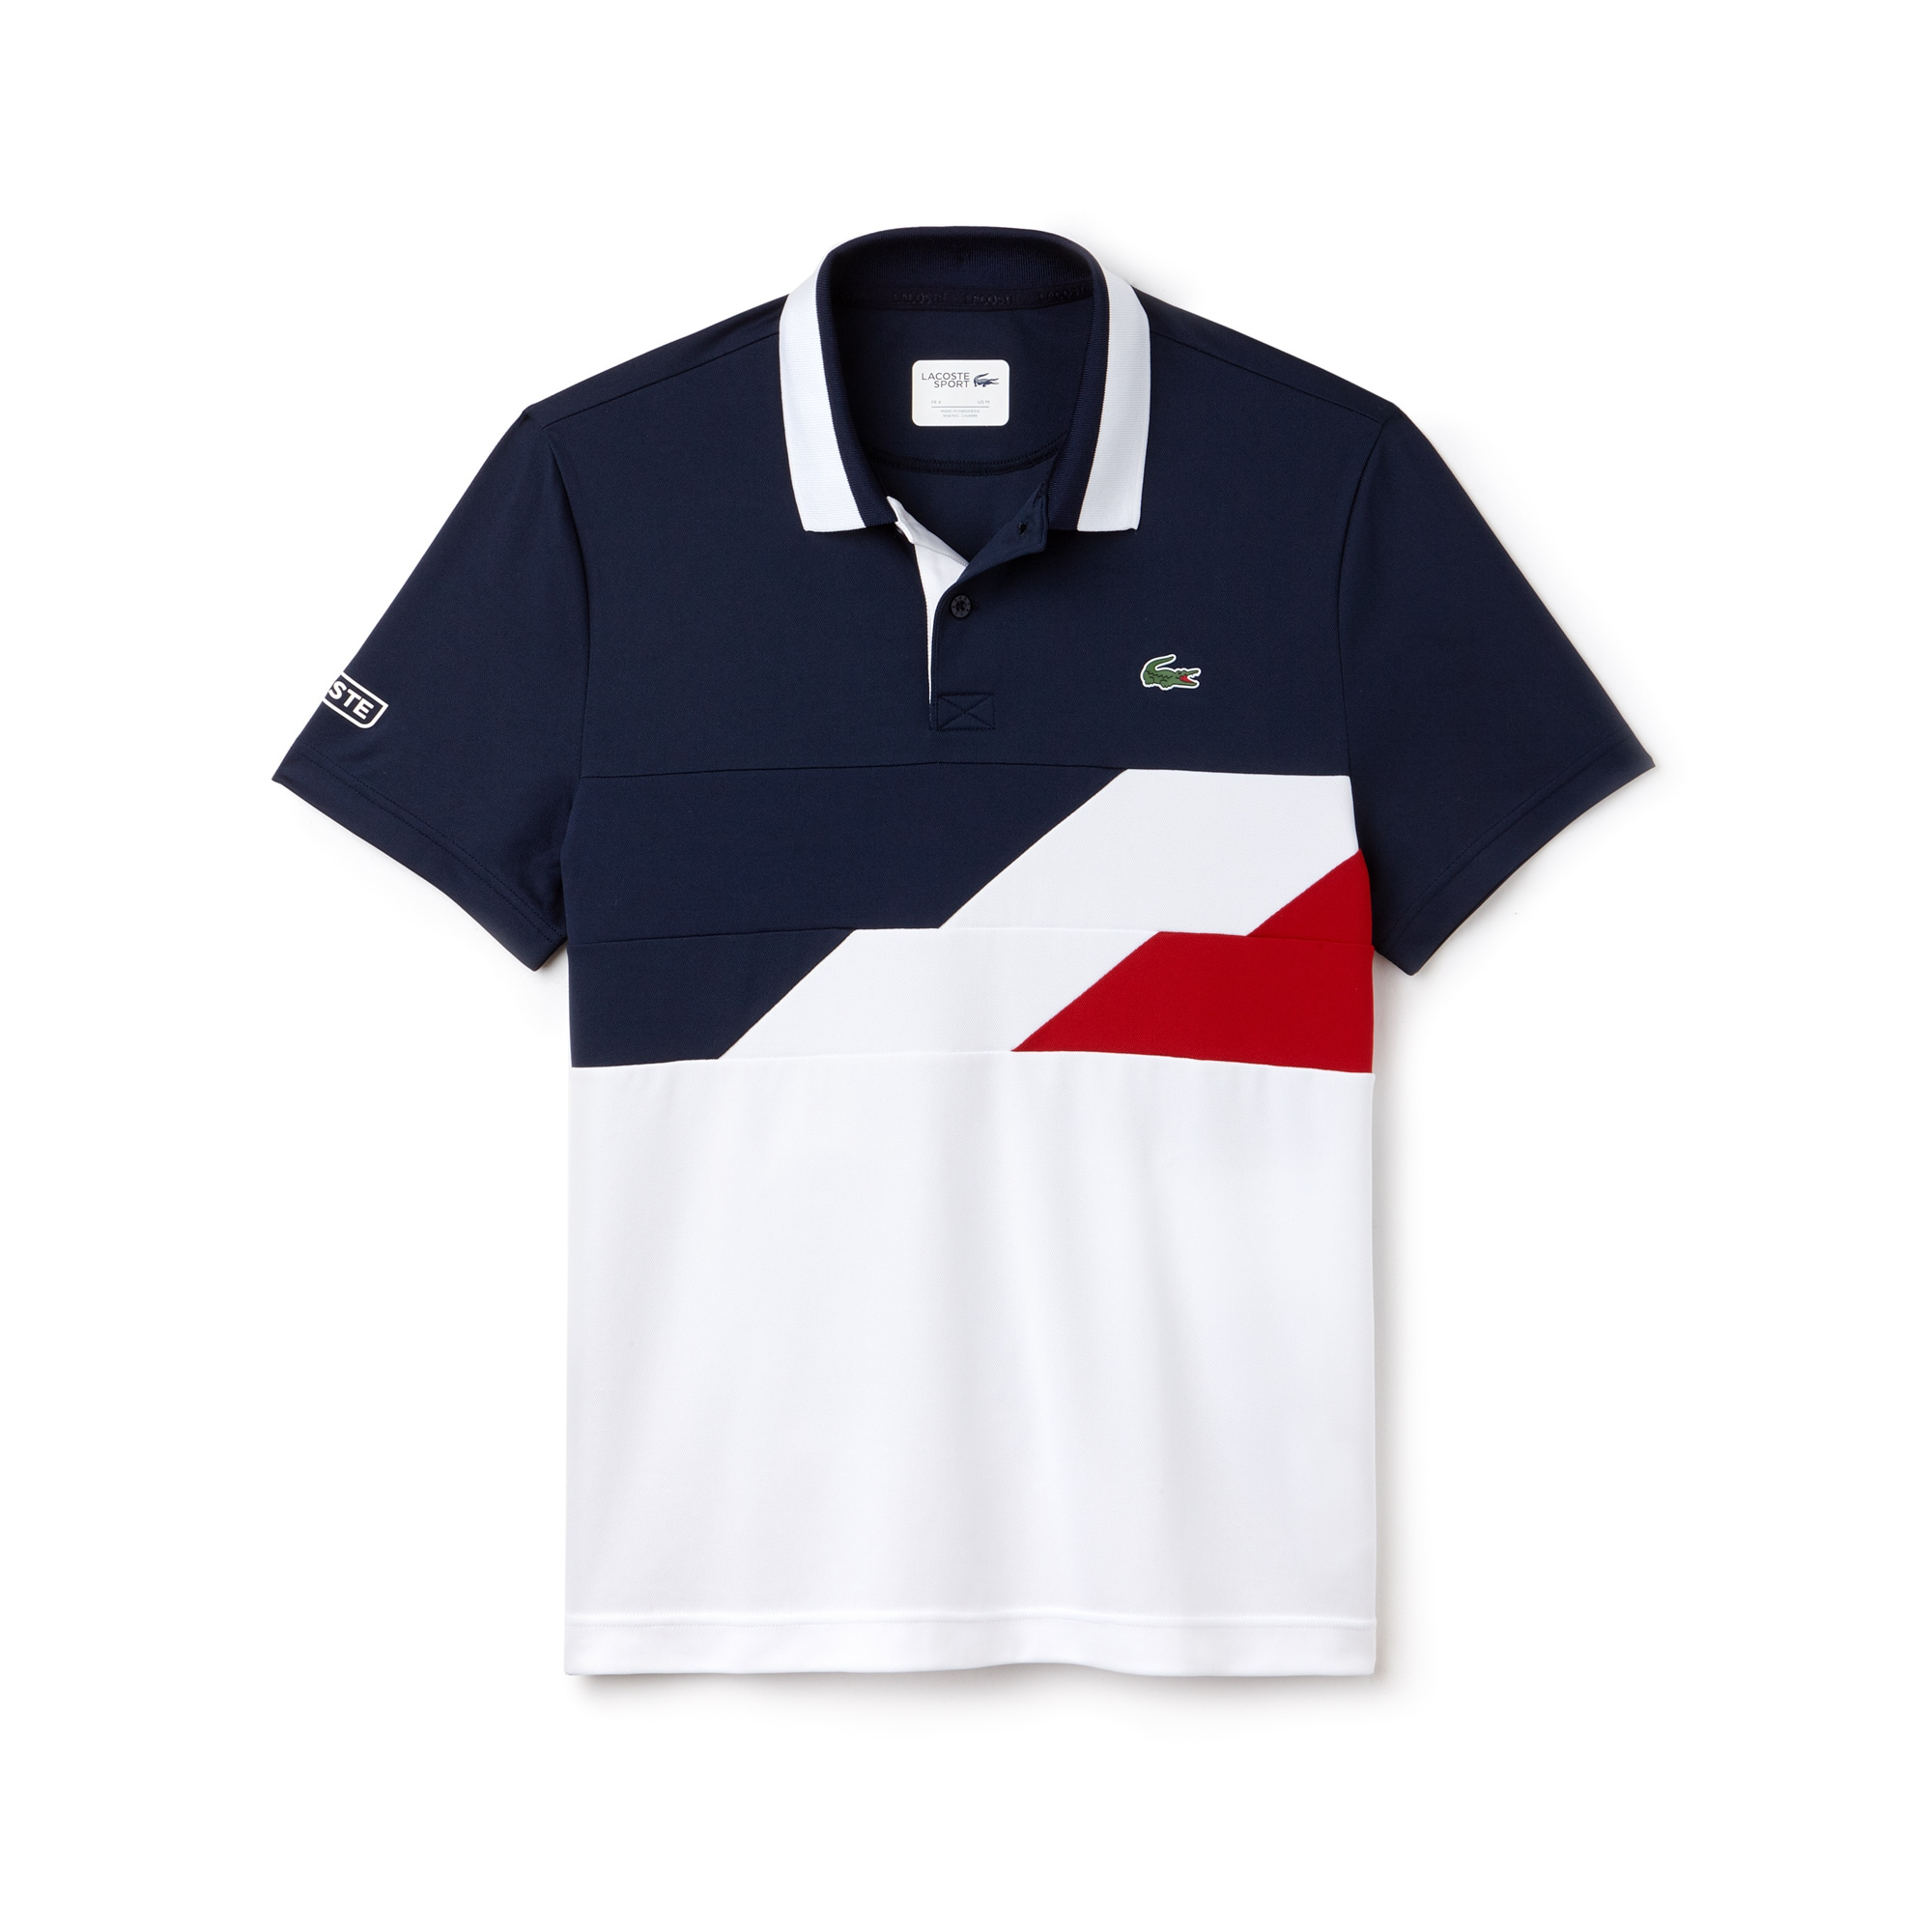 Men's Lacoste SPORT Colorblock Bands Technical Piqué Tennis Polo